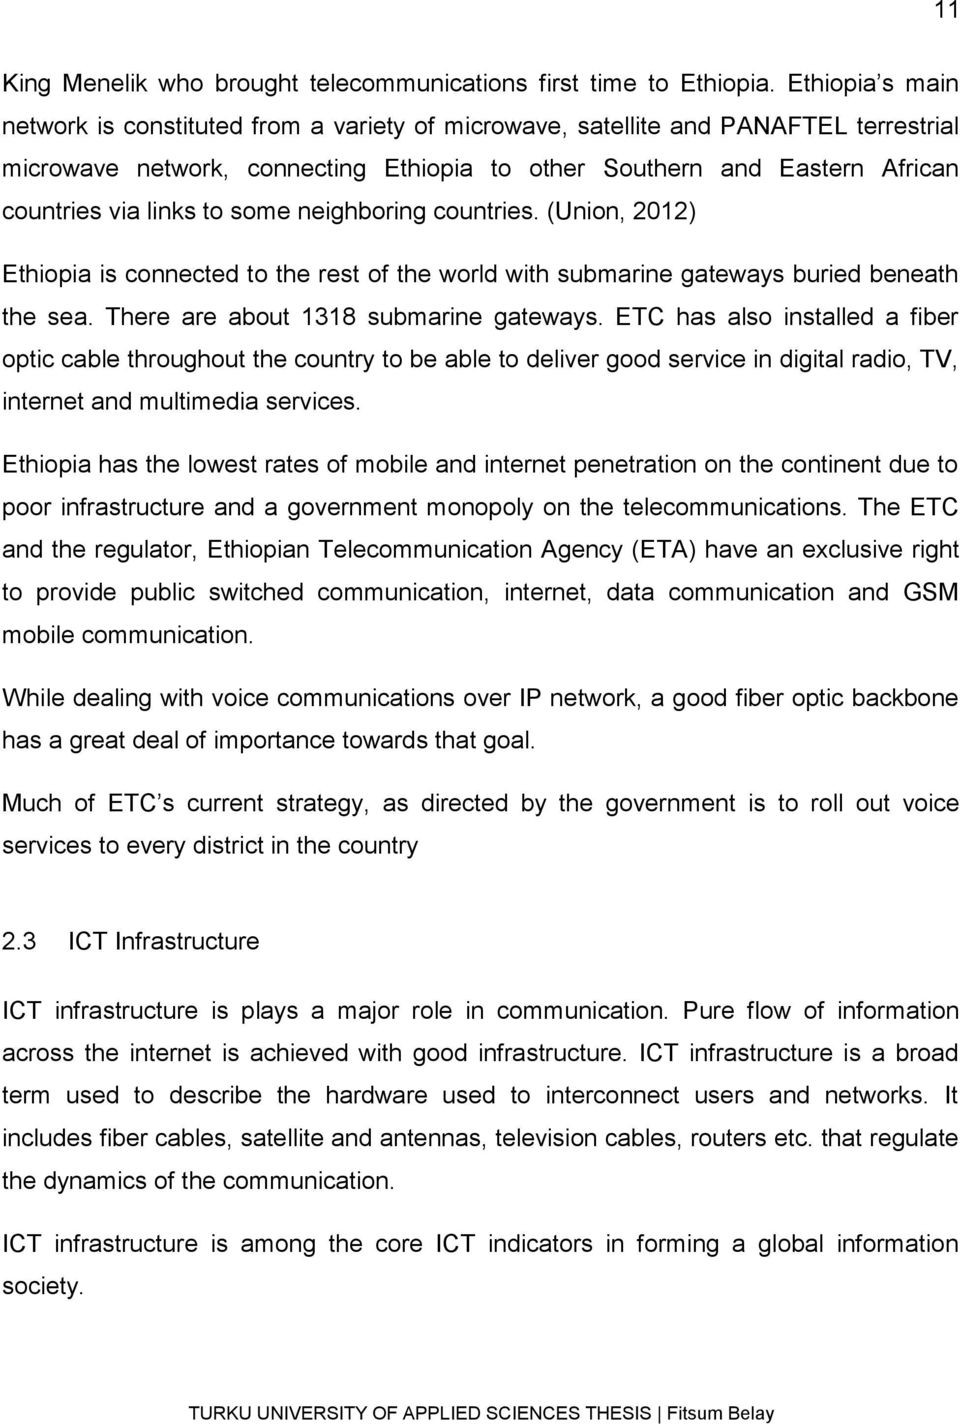 to some neighboring countries. (Union, 2012) Ethiopia is connected to the rest of the world with submarine gateways buried beneath the sea. There are about 1318 submarine gateways.